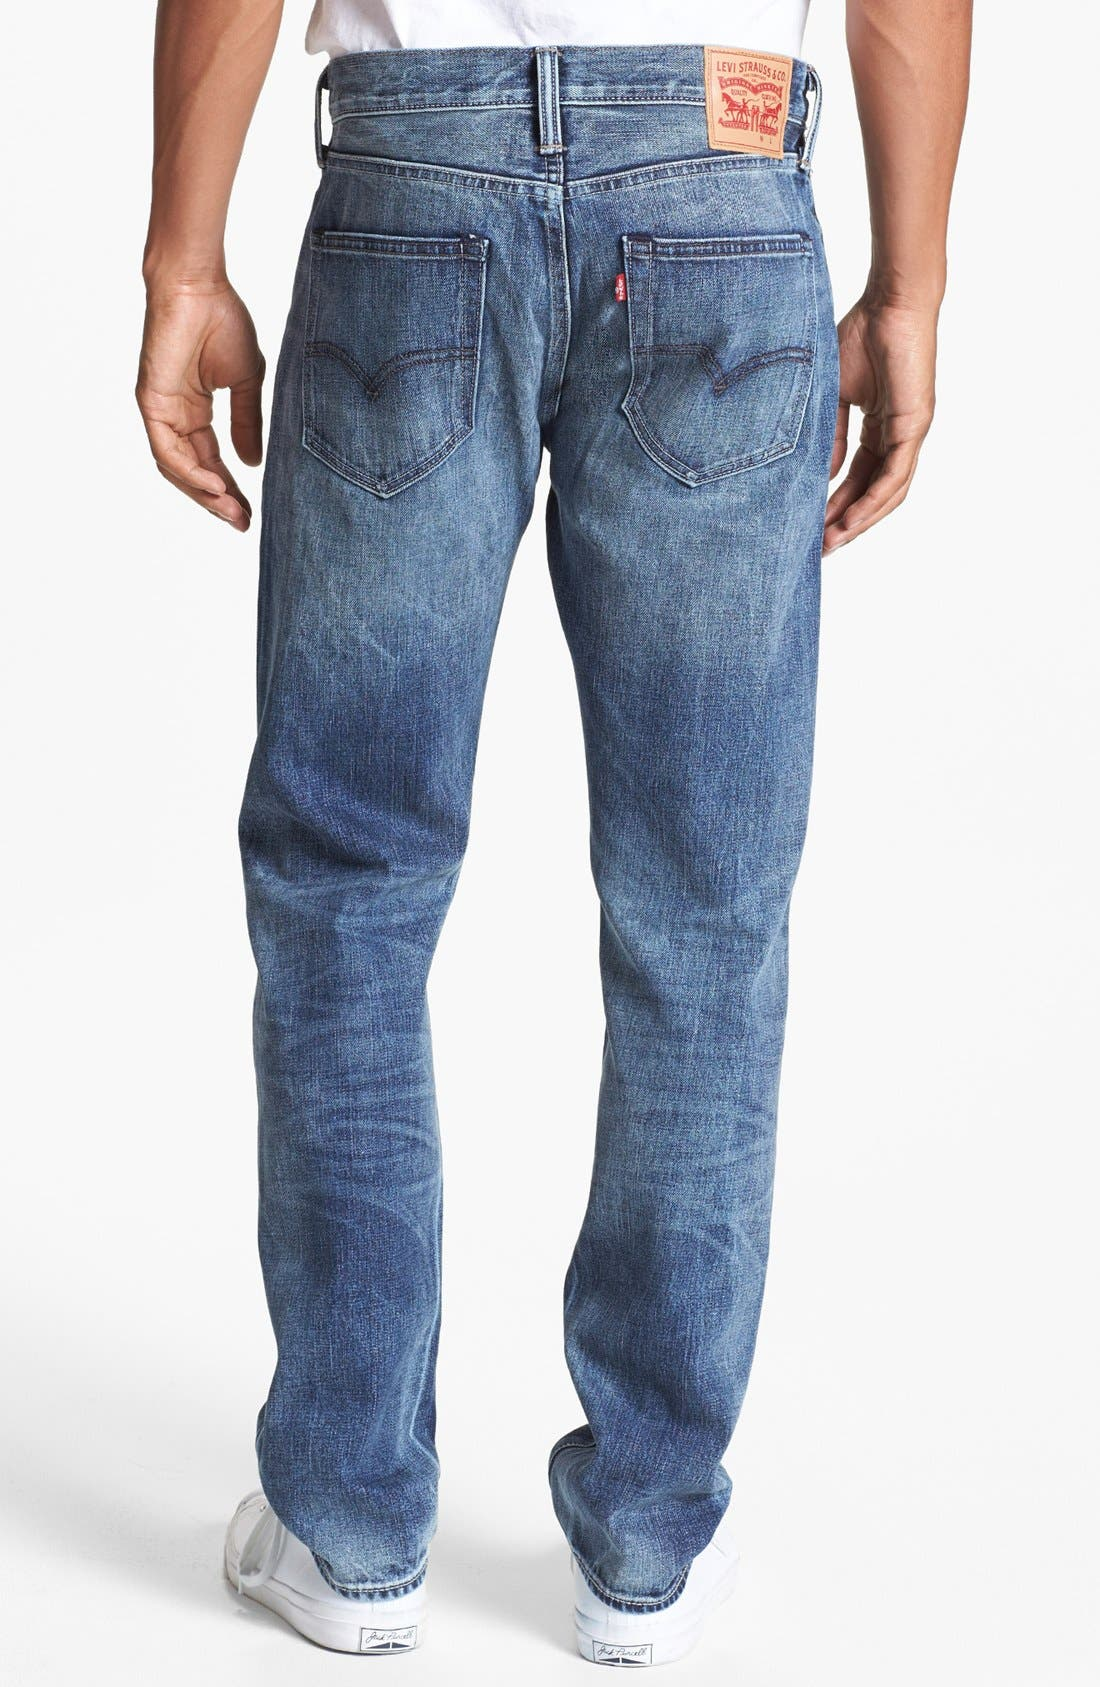 Alternate Image 1 Selected - Levi's® '508™' Skinny Fit Jeans (Splattered)